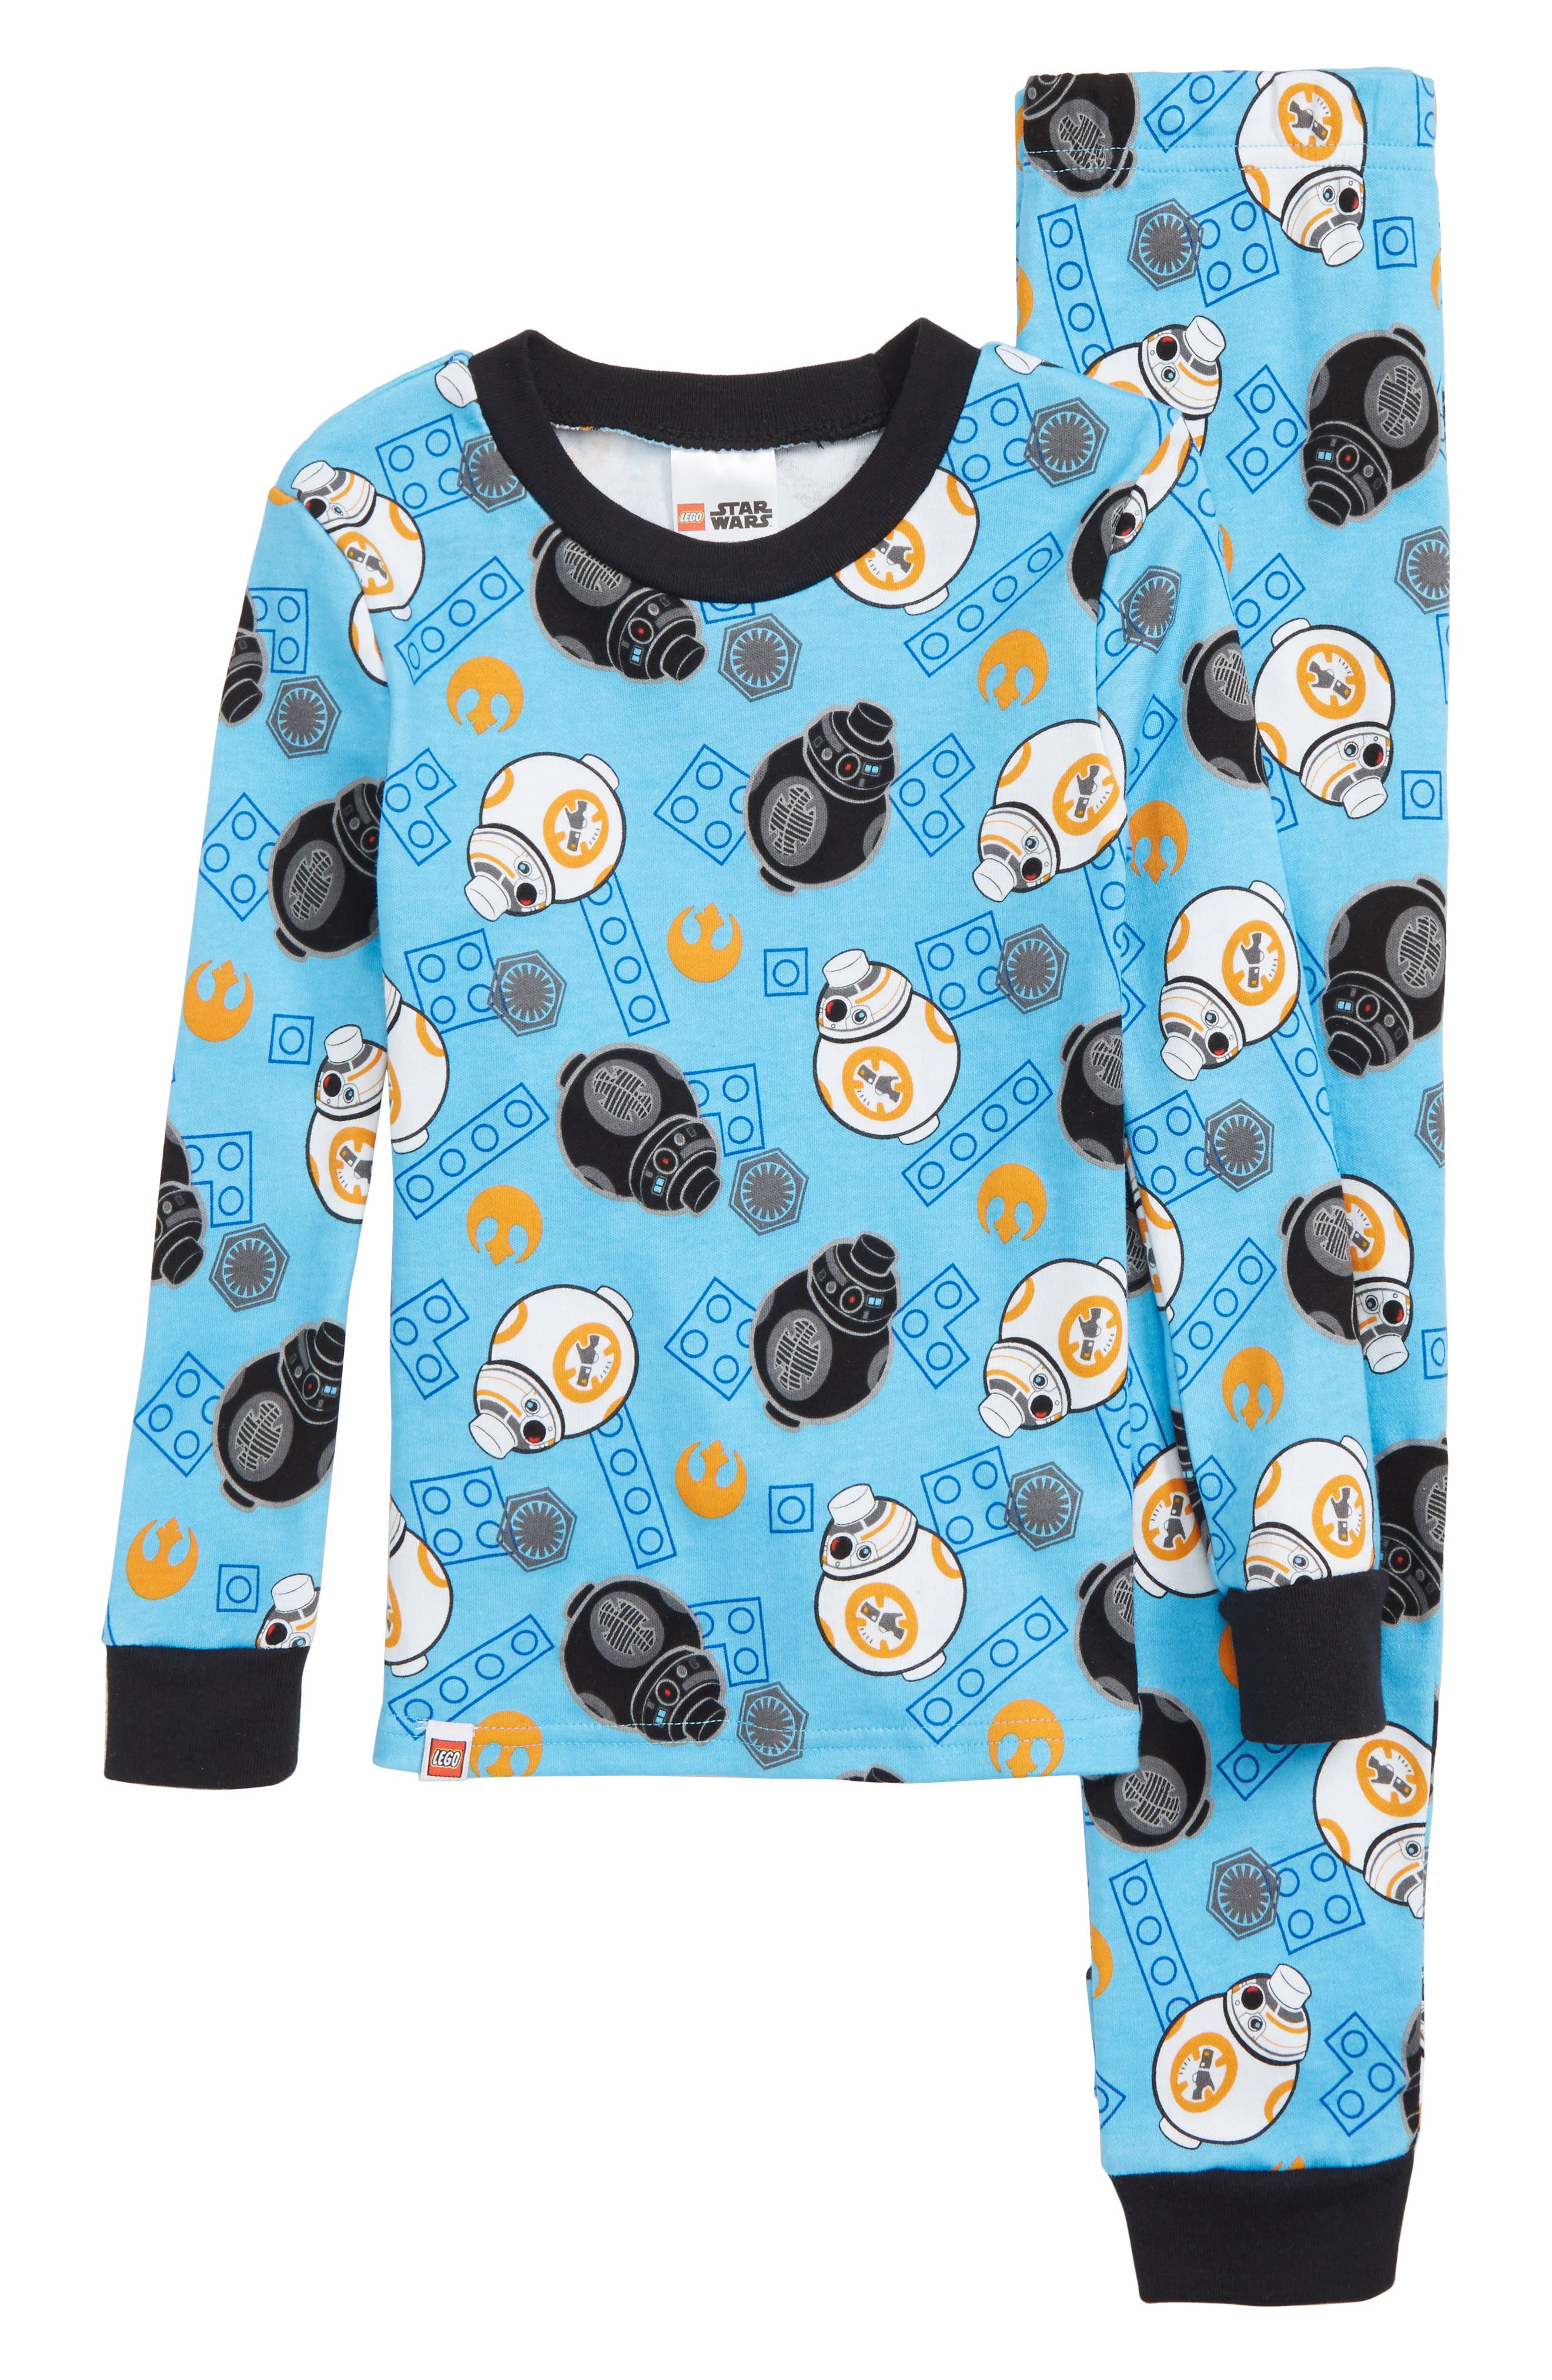 x Star Wars<sup>™</sup> Fitted Two-Piece Pajamas,                             Main thumbnail 1, color,                             BLUE